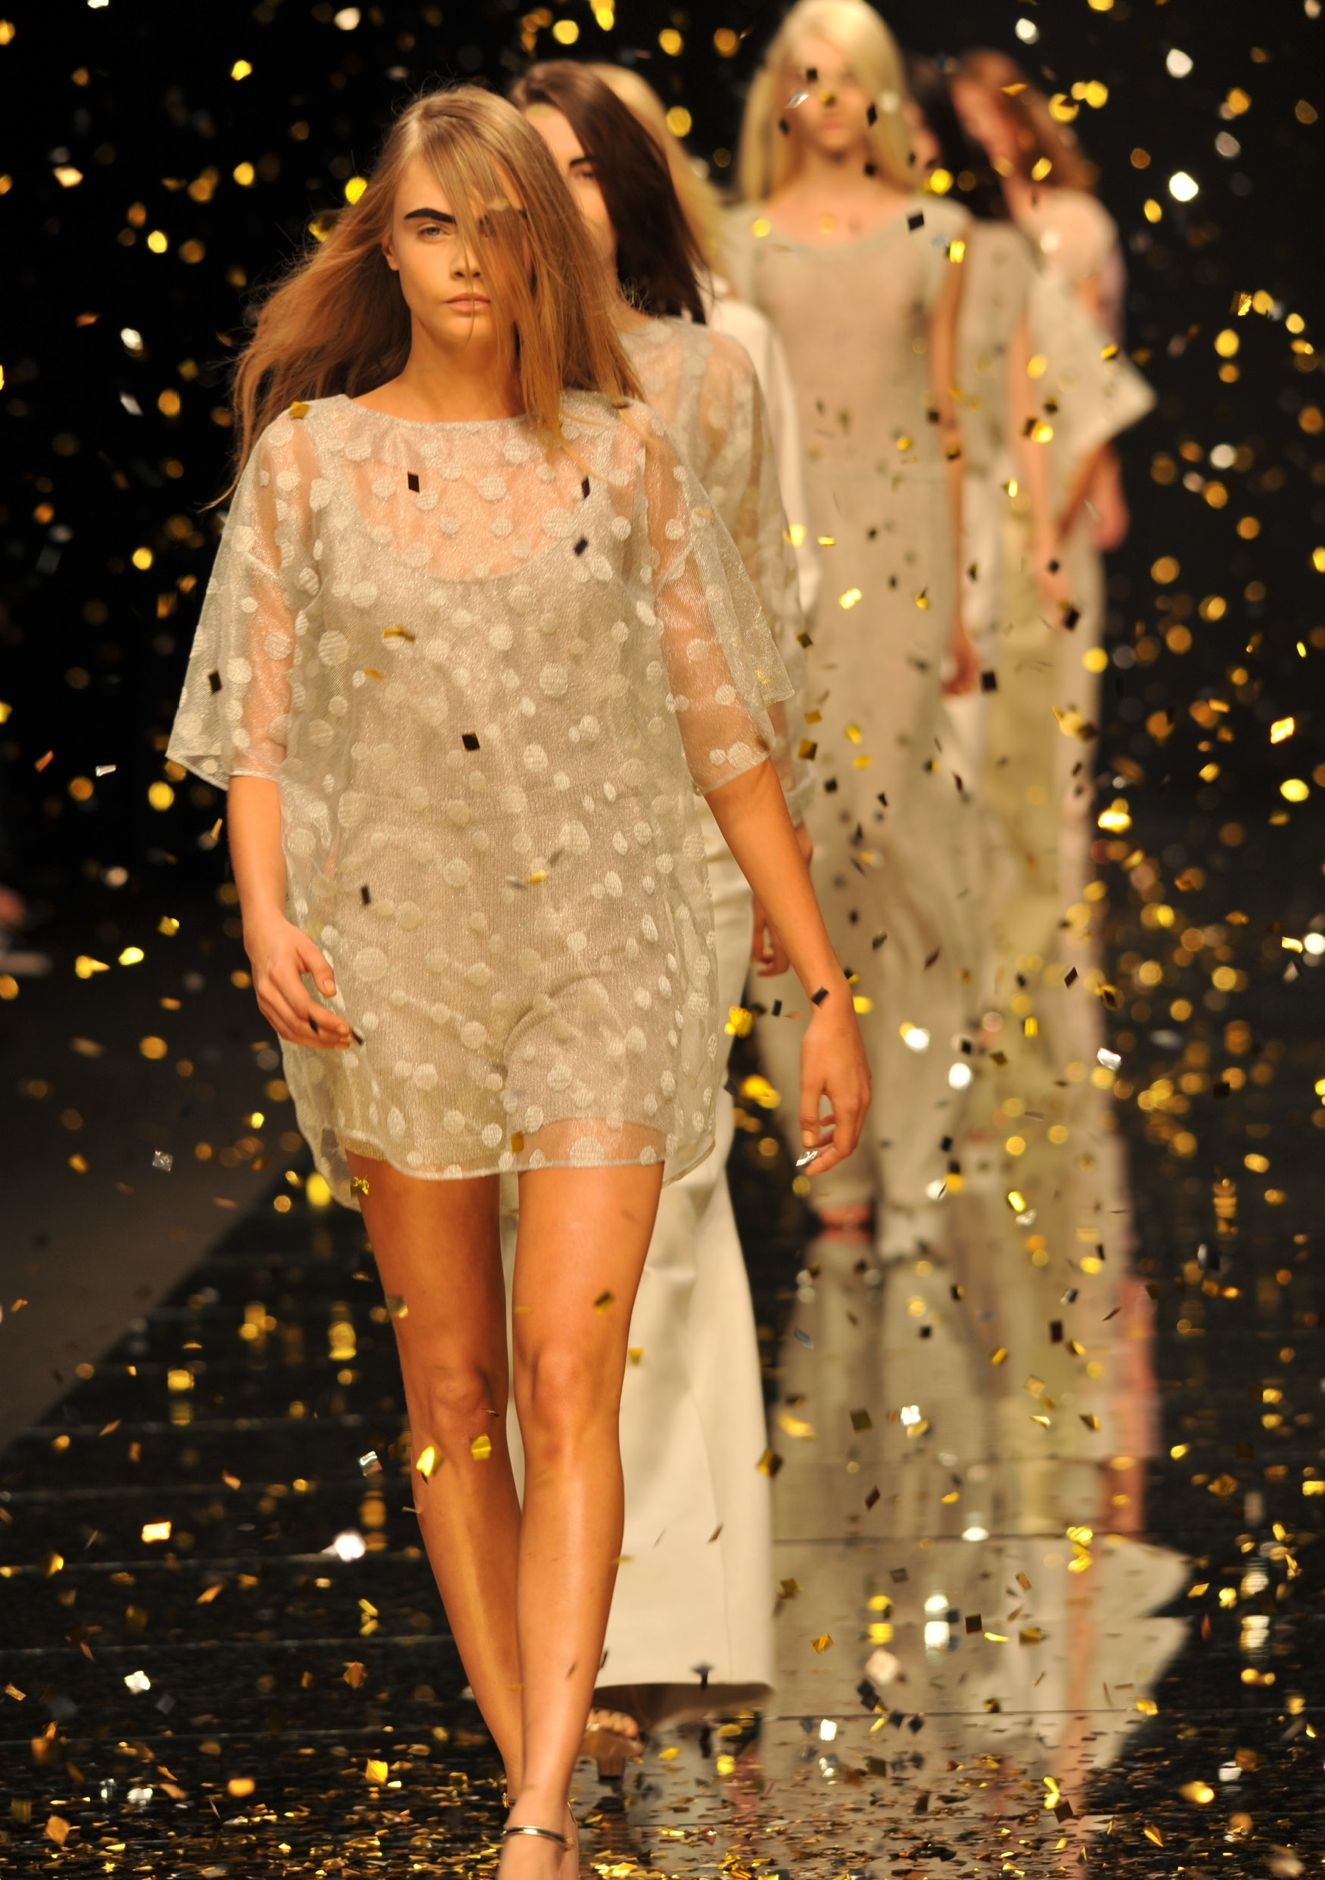 Anteprima Spring Summer 2013 Women Collection Milano Fashion Week Runway Finale